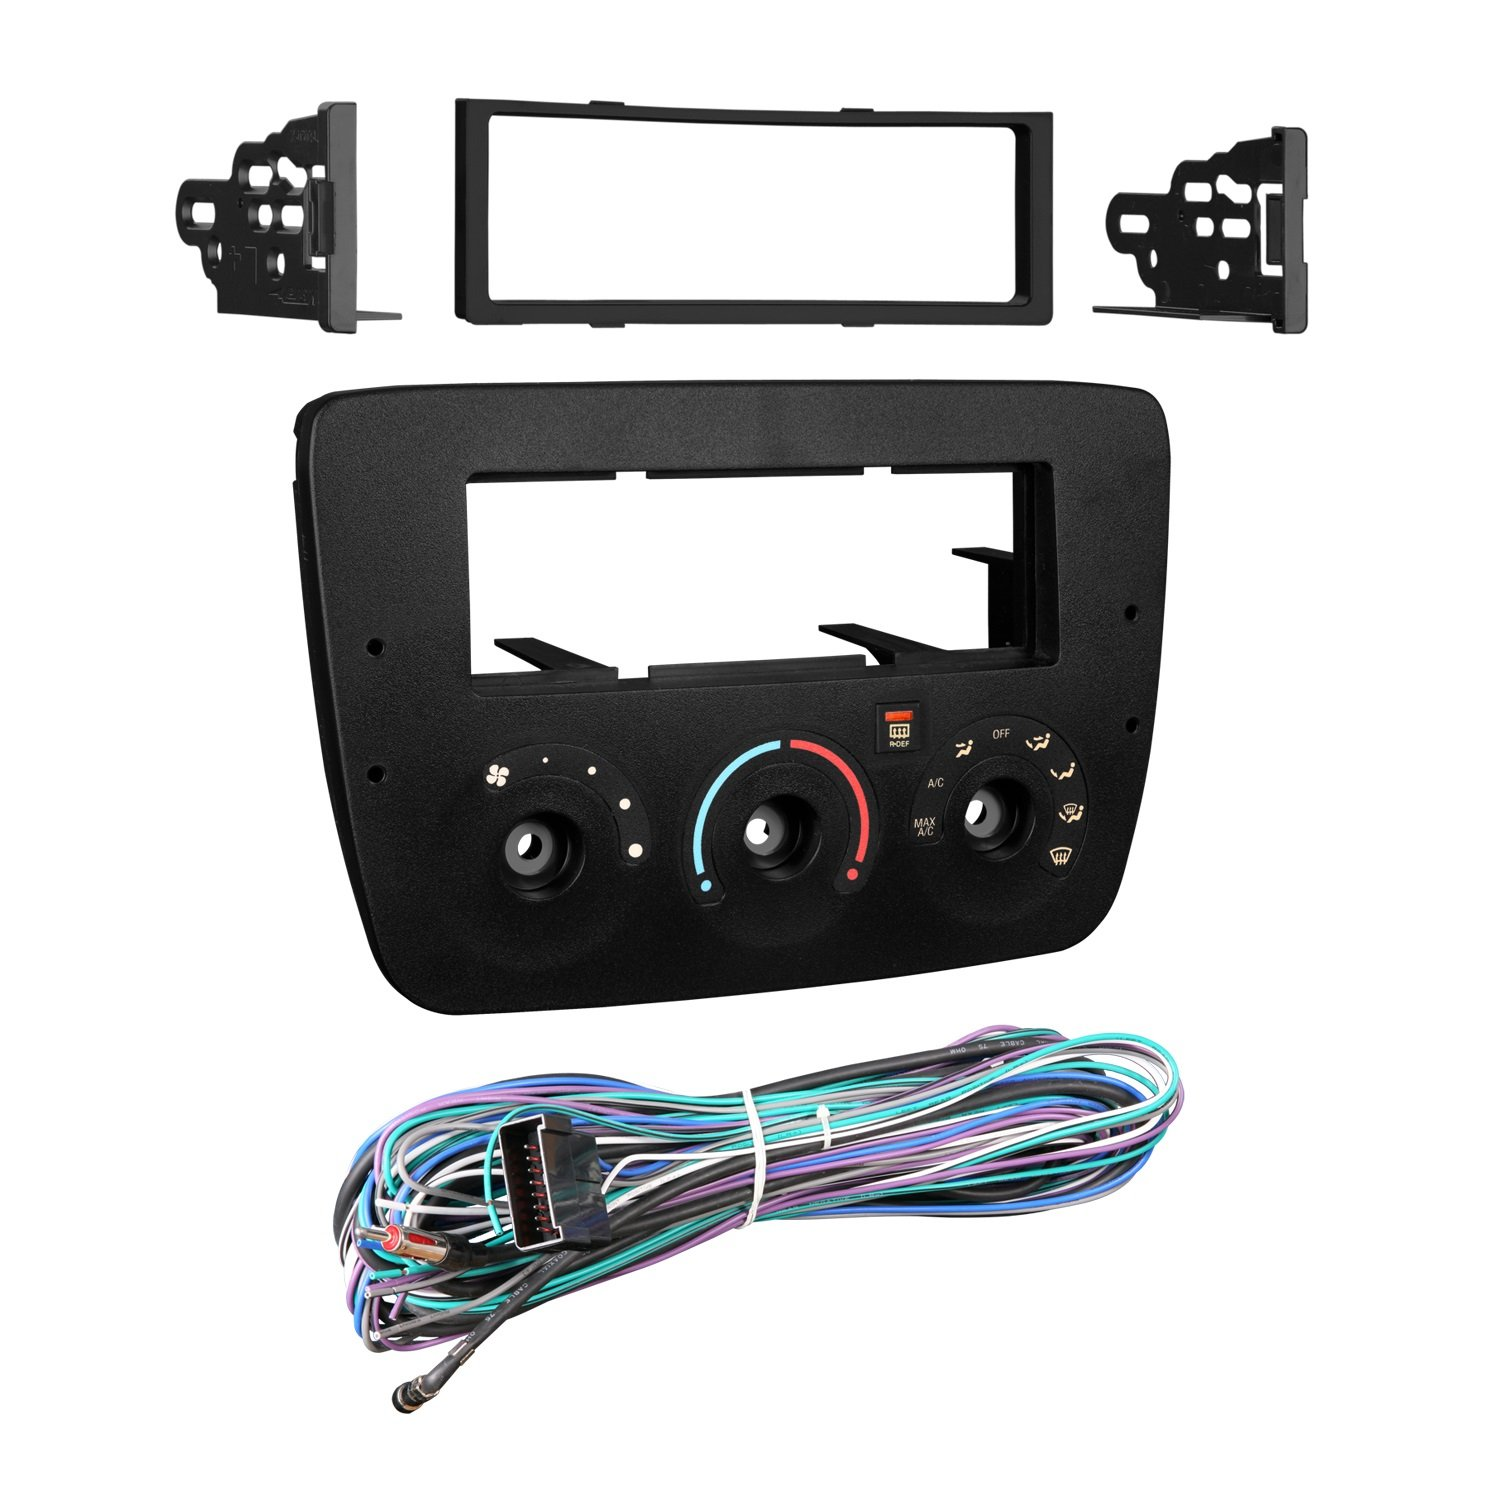 718FgFG3GhL._SL1500_ amazon com metra 99 5716 dash kit for taurus sable 00 03 kit with Aftermarket Radio Wiring Harness at gsmportal.co